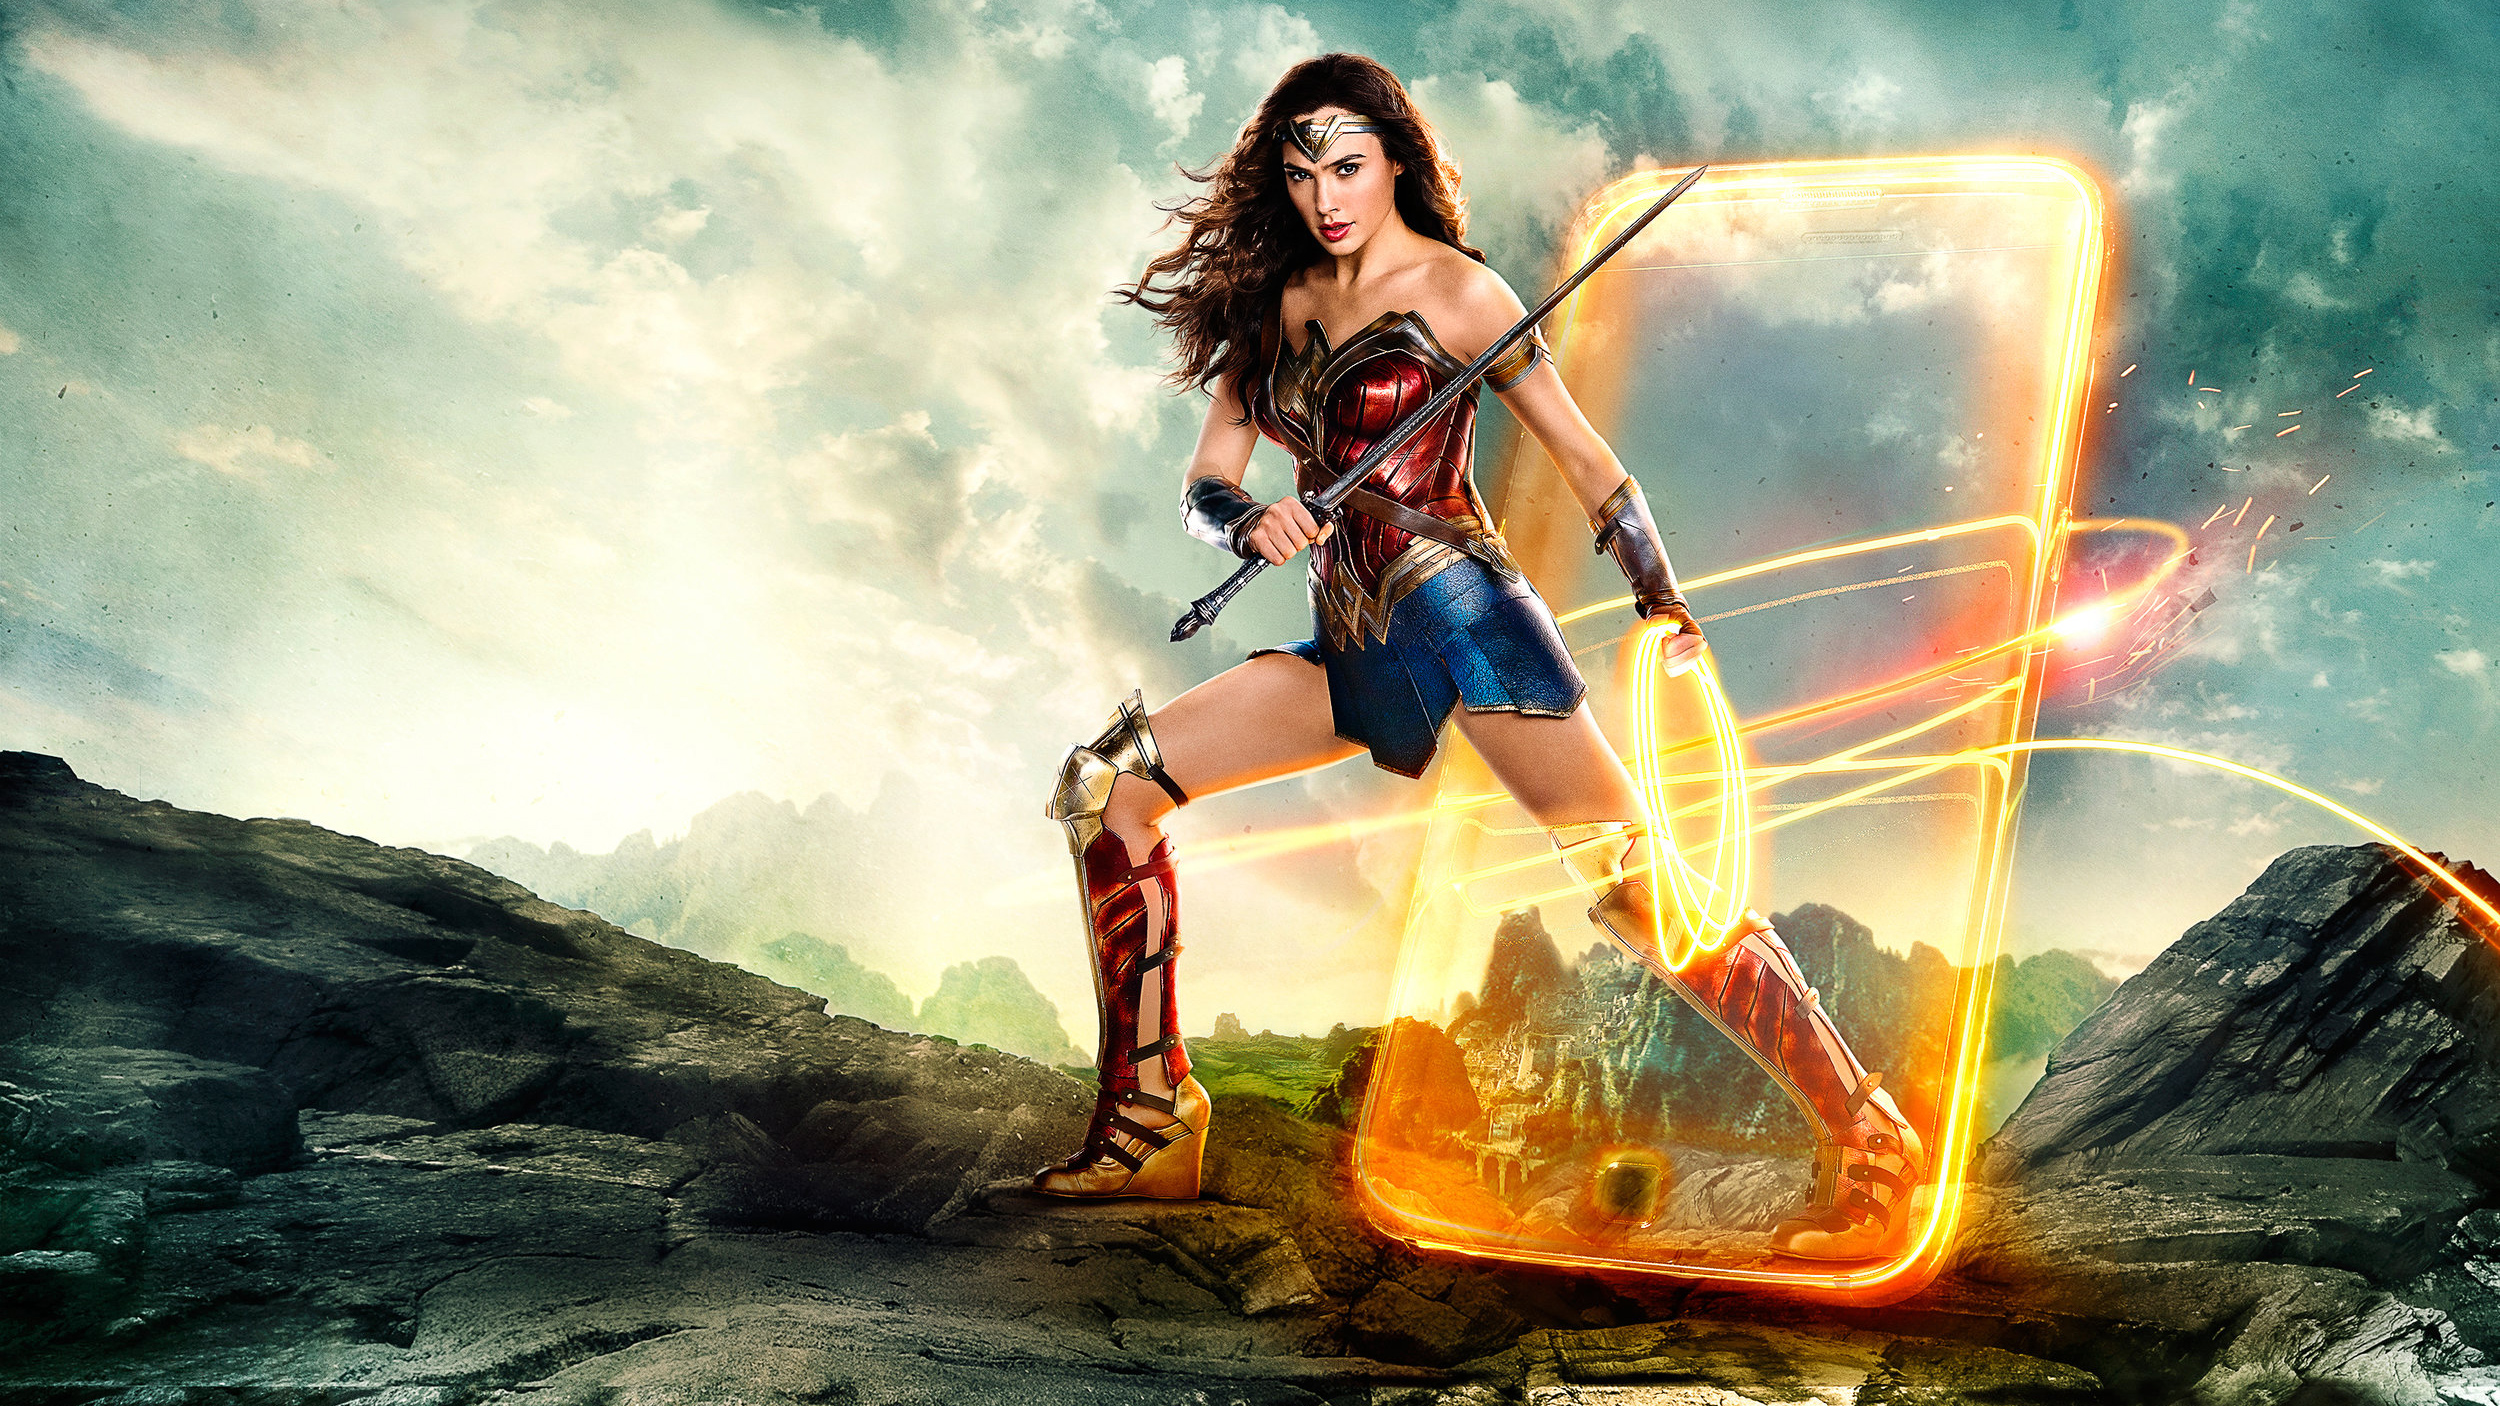 Wallpaper Wonder Woman 2017 Movies 6723: Justice League Wonder Woman 2018, HD Movies, 4k Wallpapers